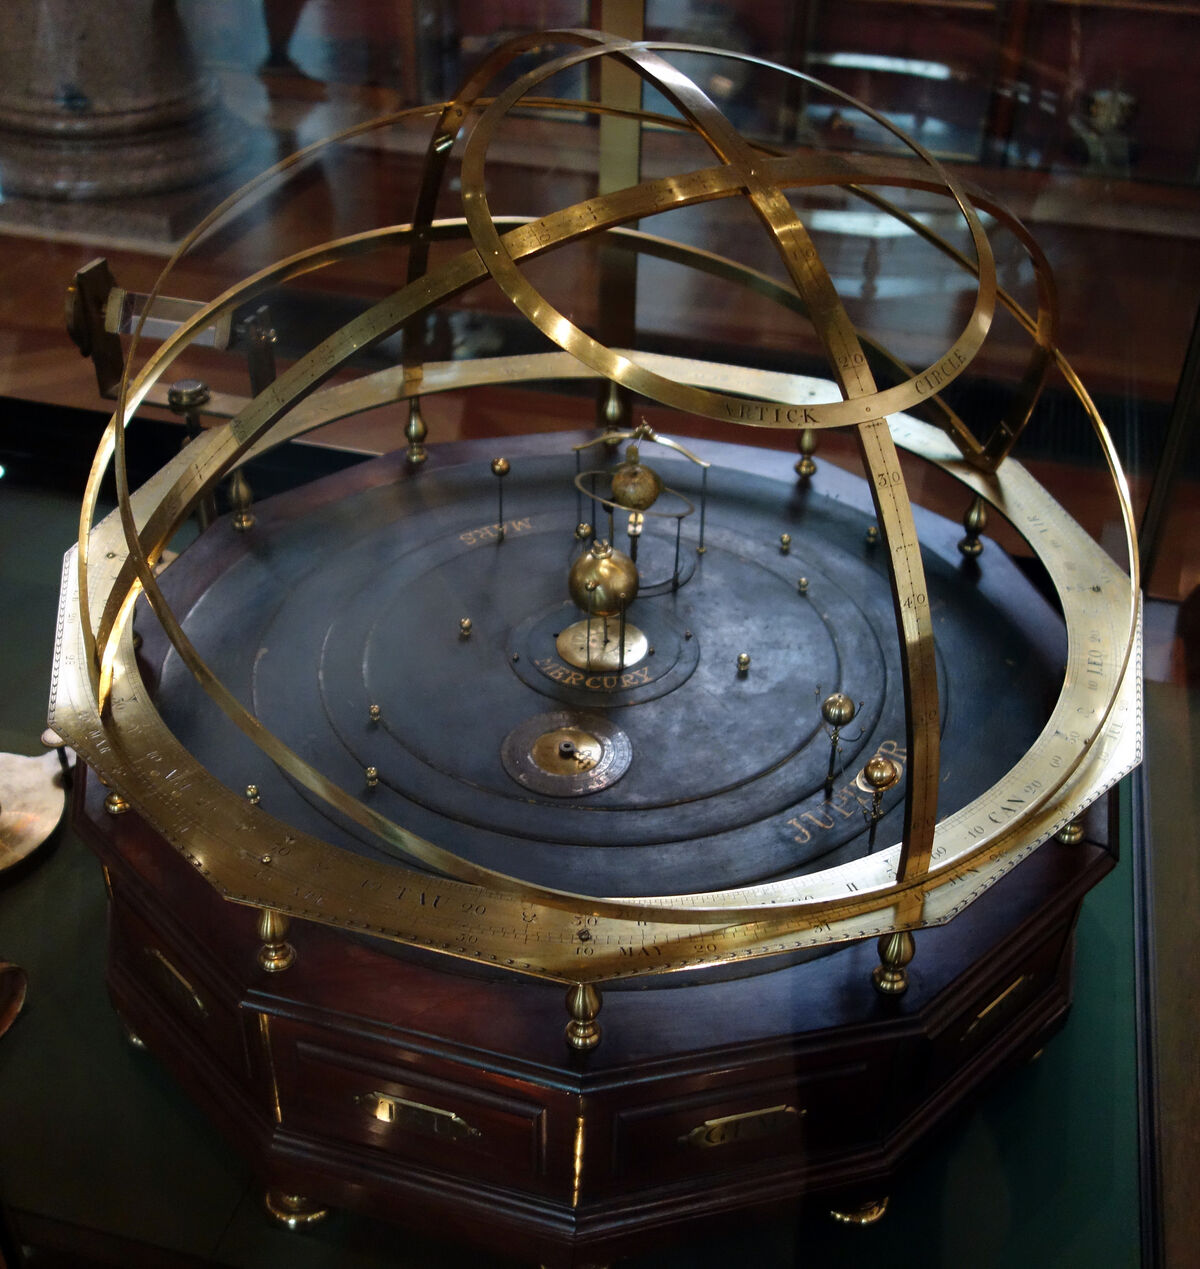 Orrery, c. 1750. Science Museum, London. Photo by Steven Zucker, via Flickr.